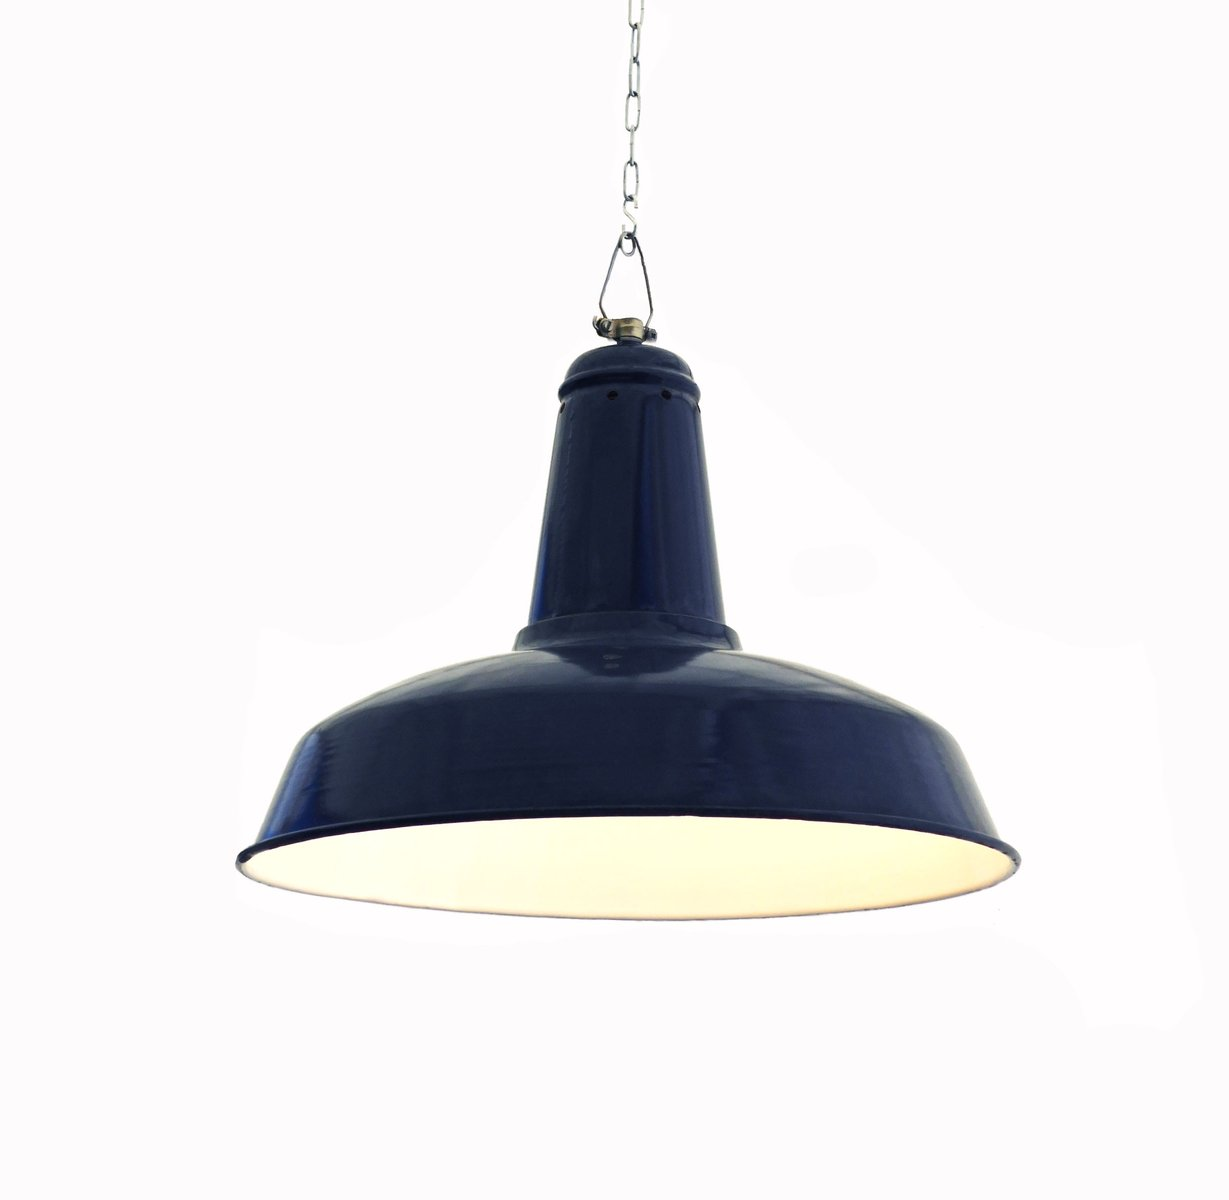 Mid century industrial pendant ceiling light for sale at for Mid century ceiling lamp